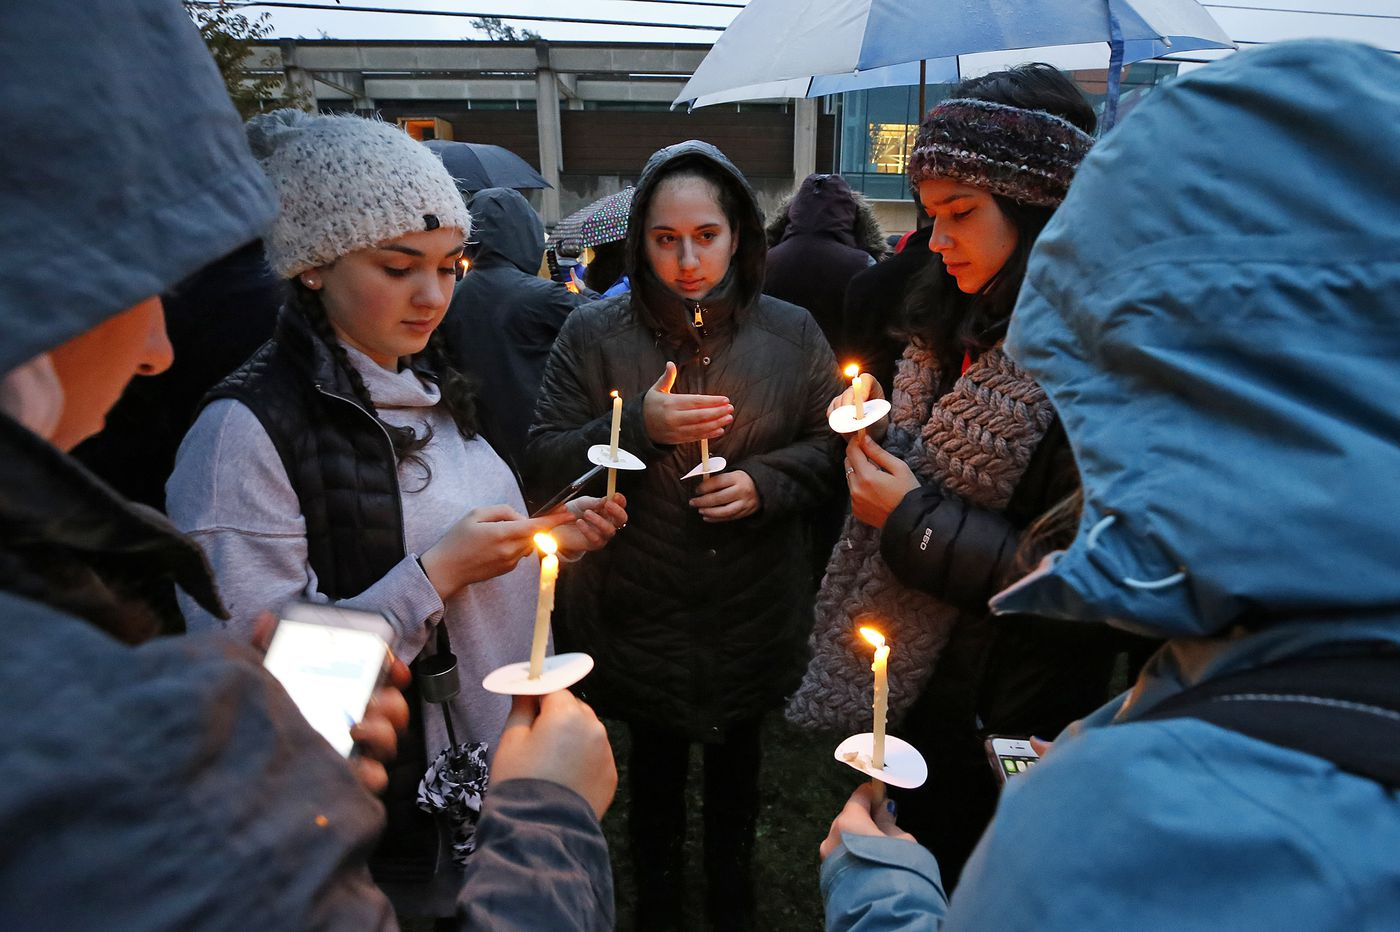 In Pittsburgh's Squirrel Hill, anger, unity, and grief-stricken calls to 'vote'